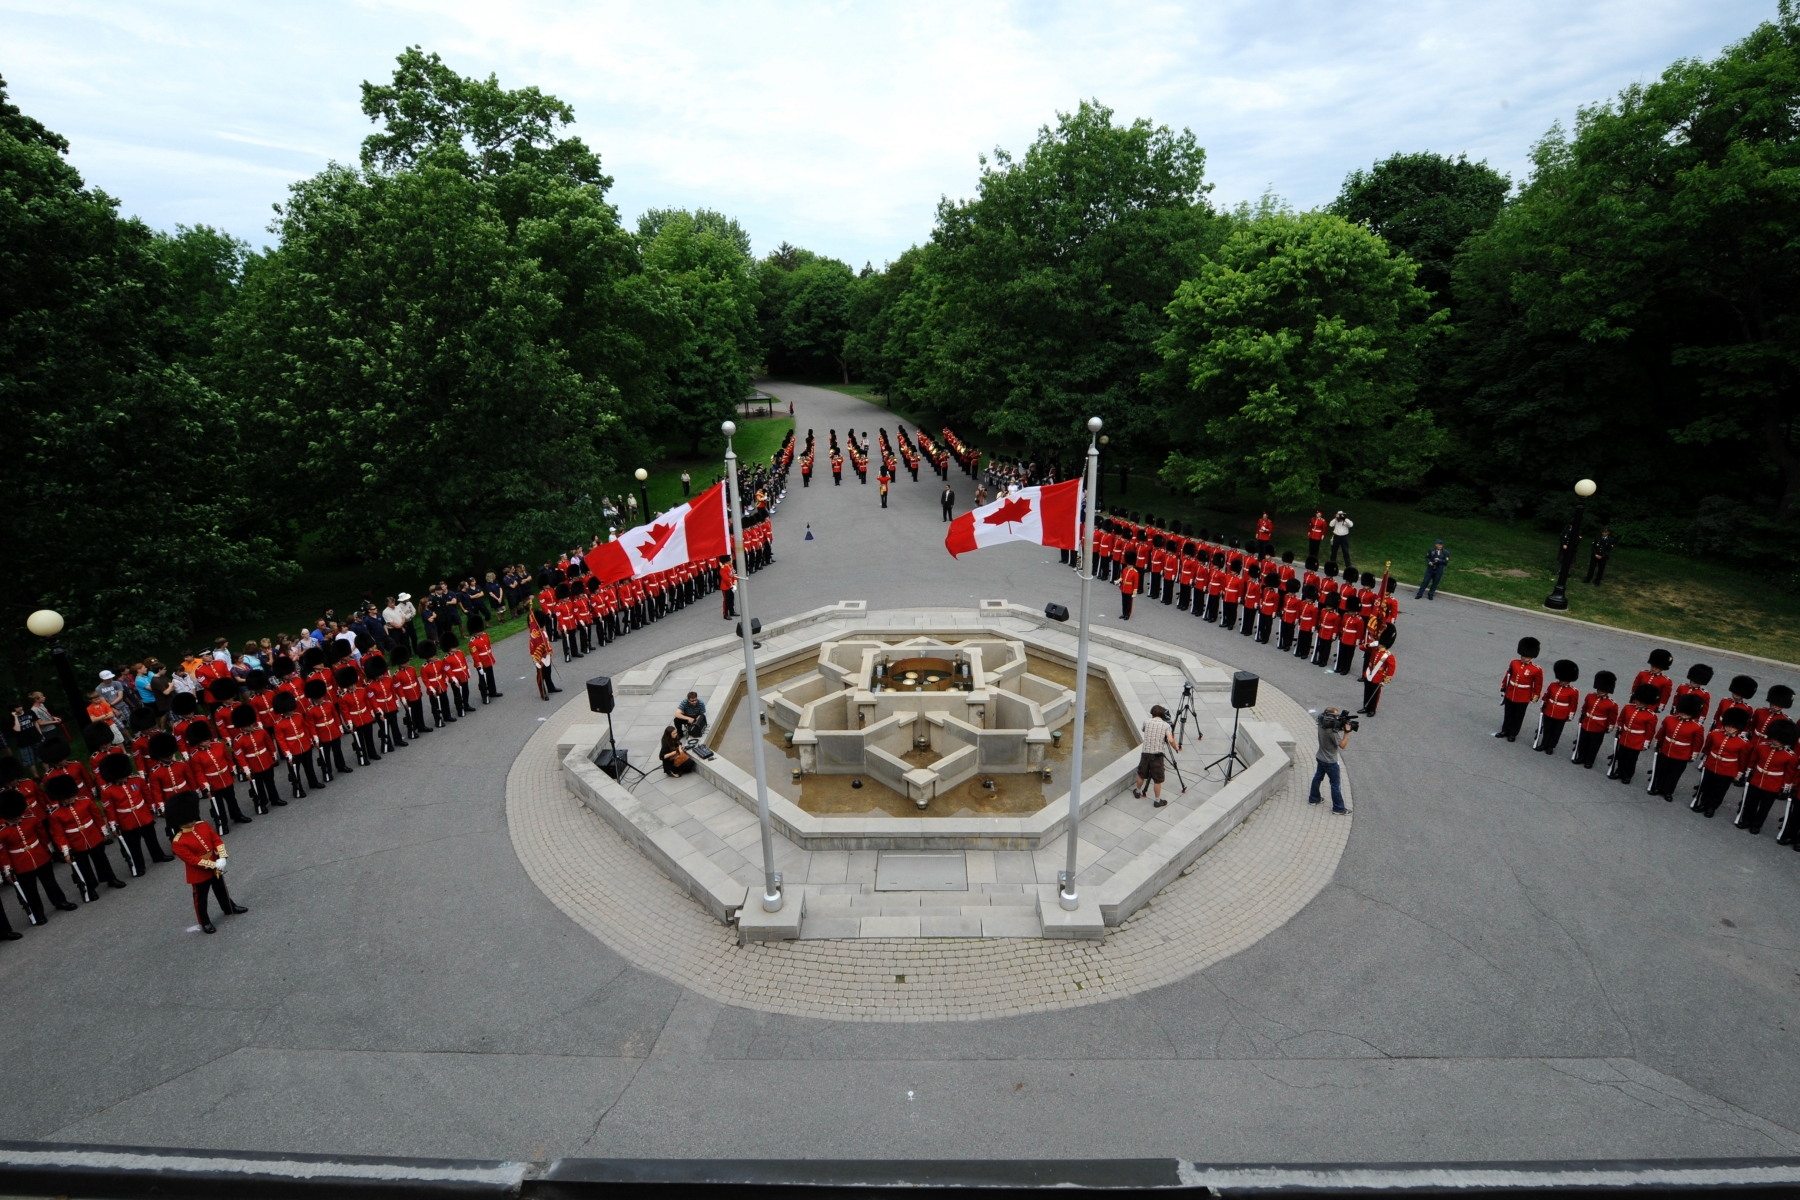 The Ceremonial Guard performs a variety of public duties in Ottawa between late June and the end of August.